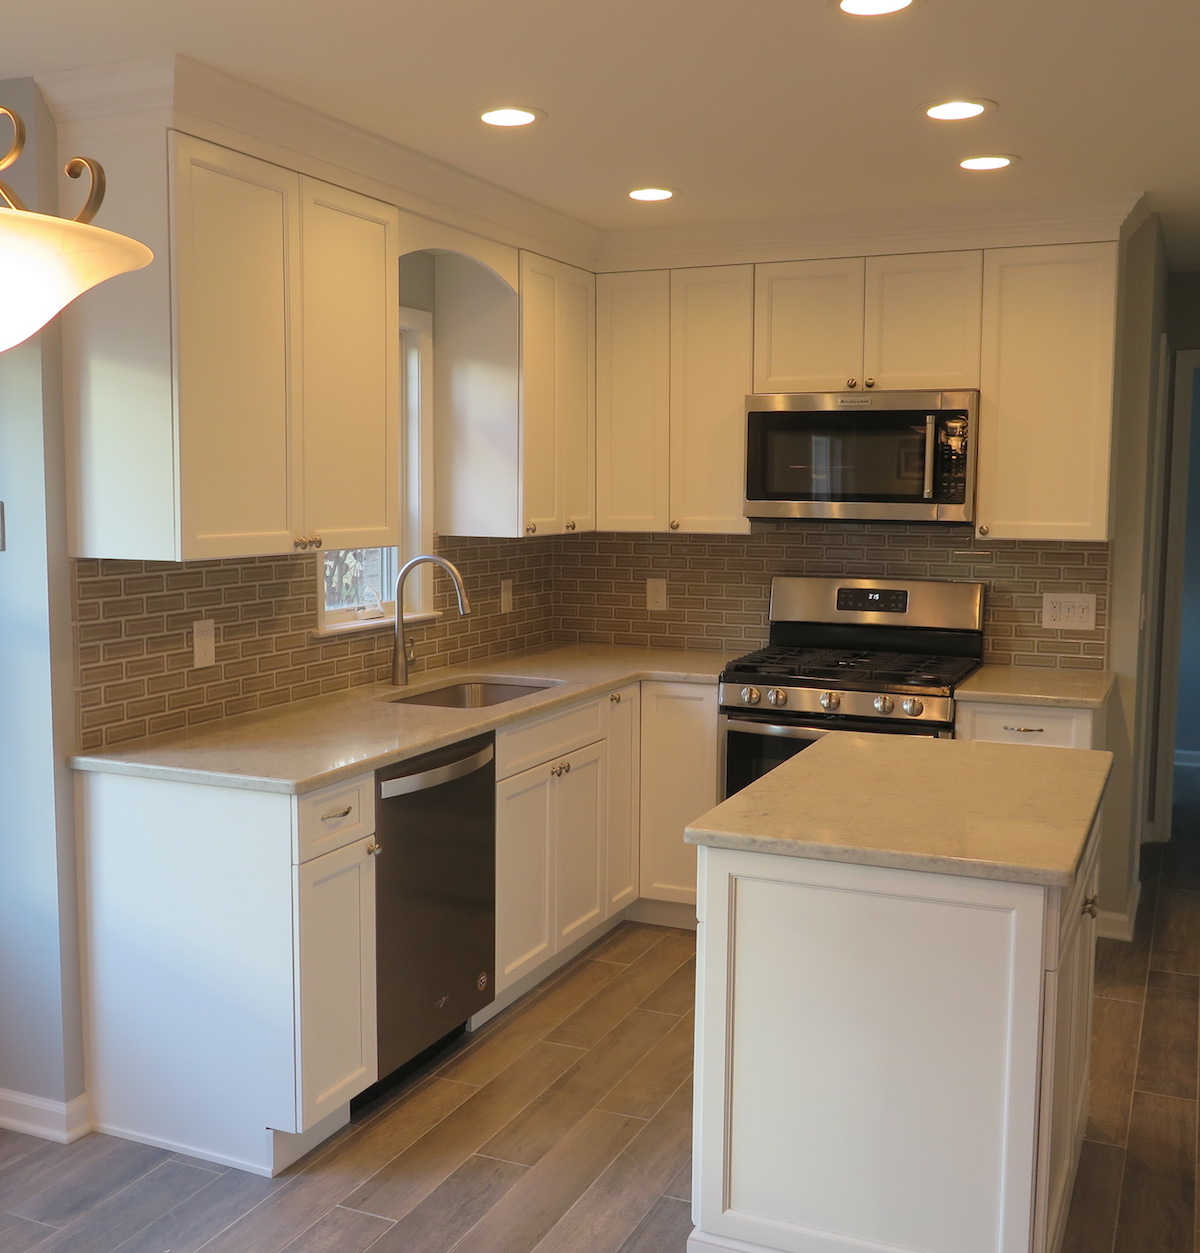 Kitchen Cabinet Refacing Nj: Before/After Kitchen Renovation